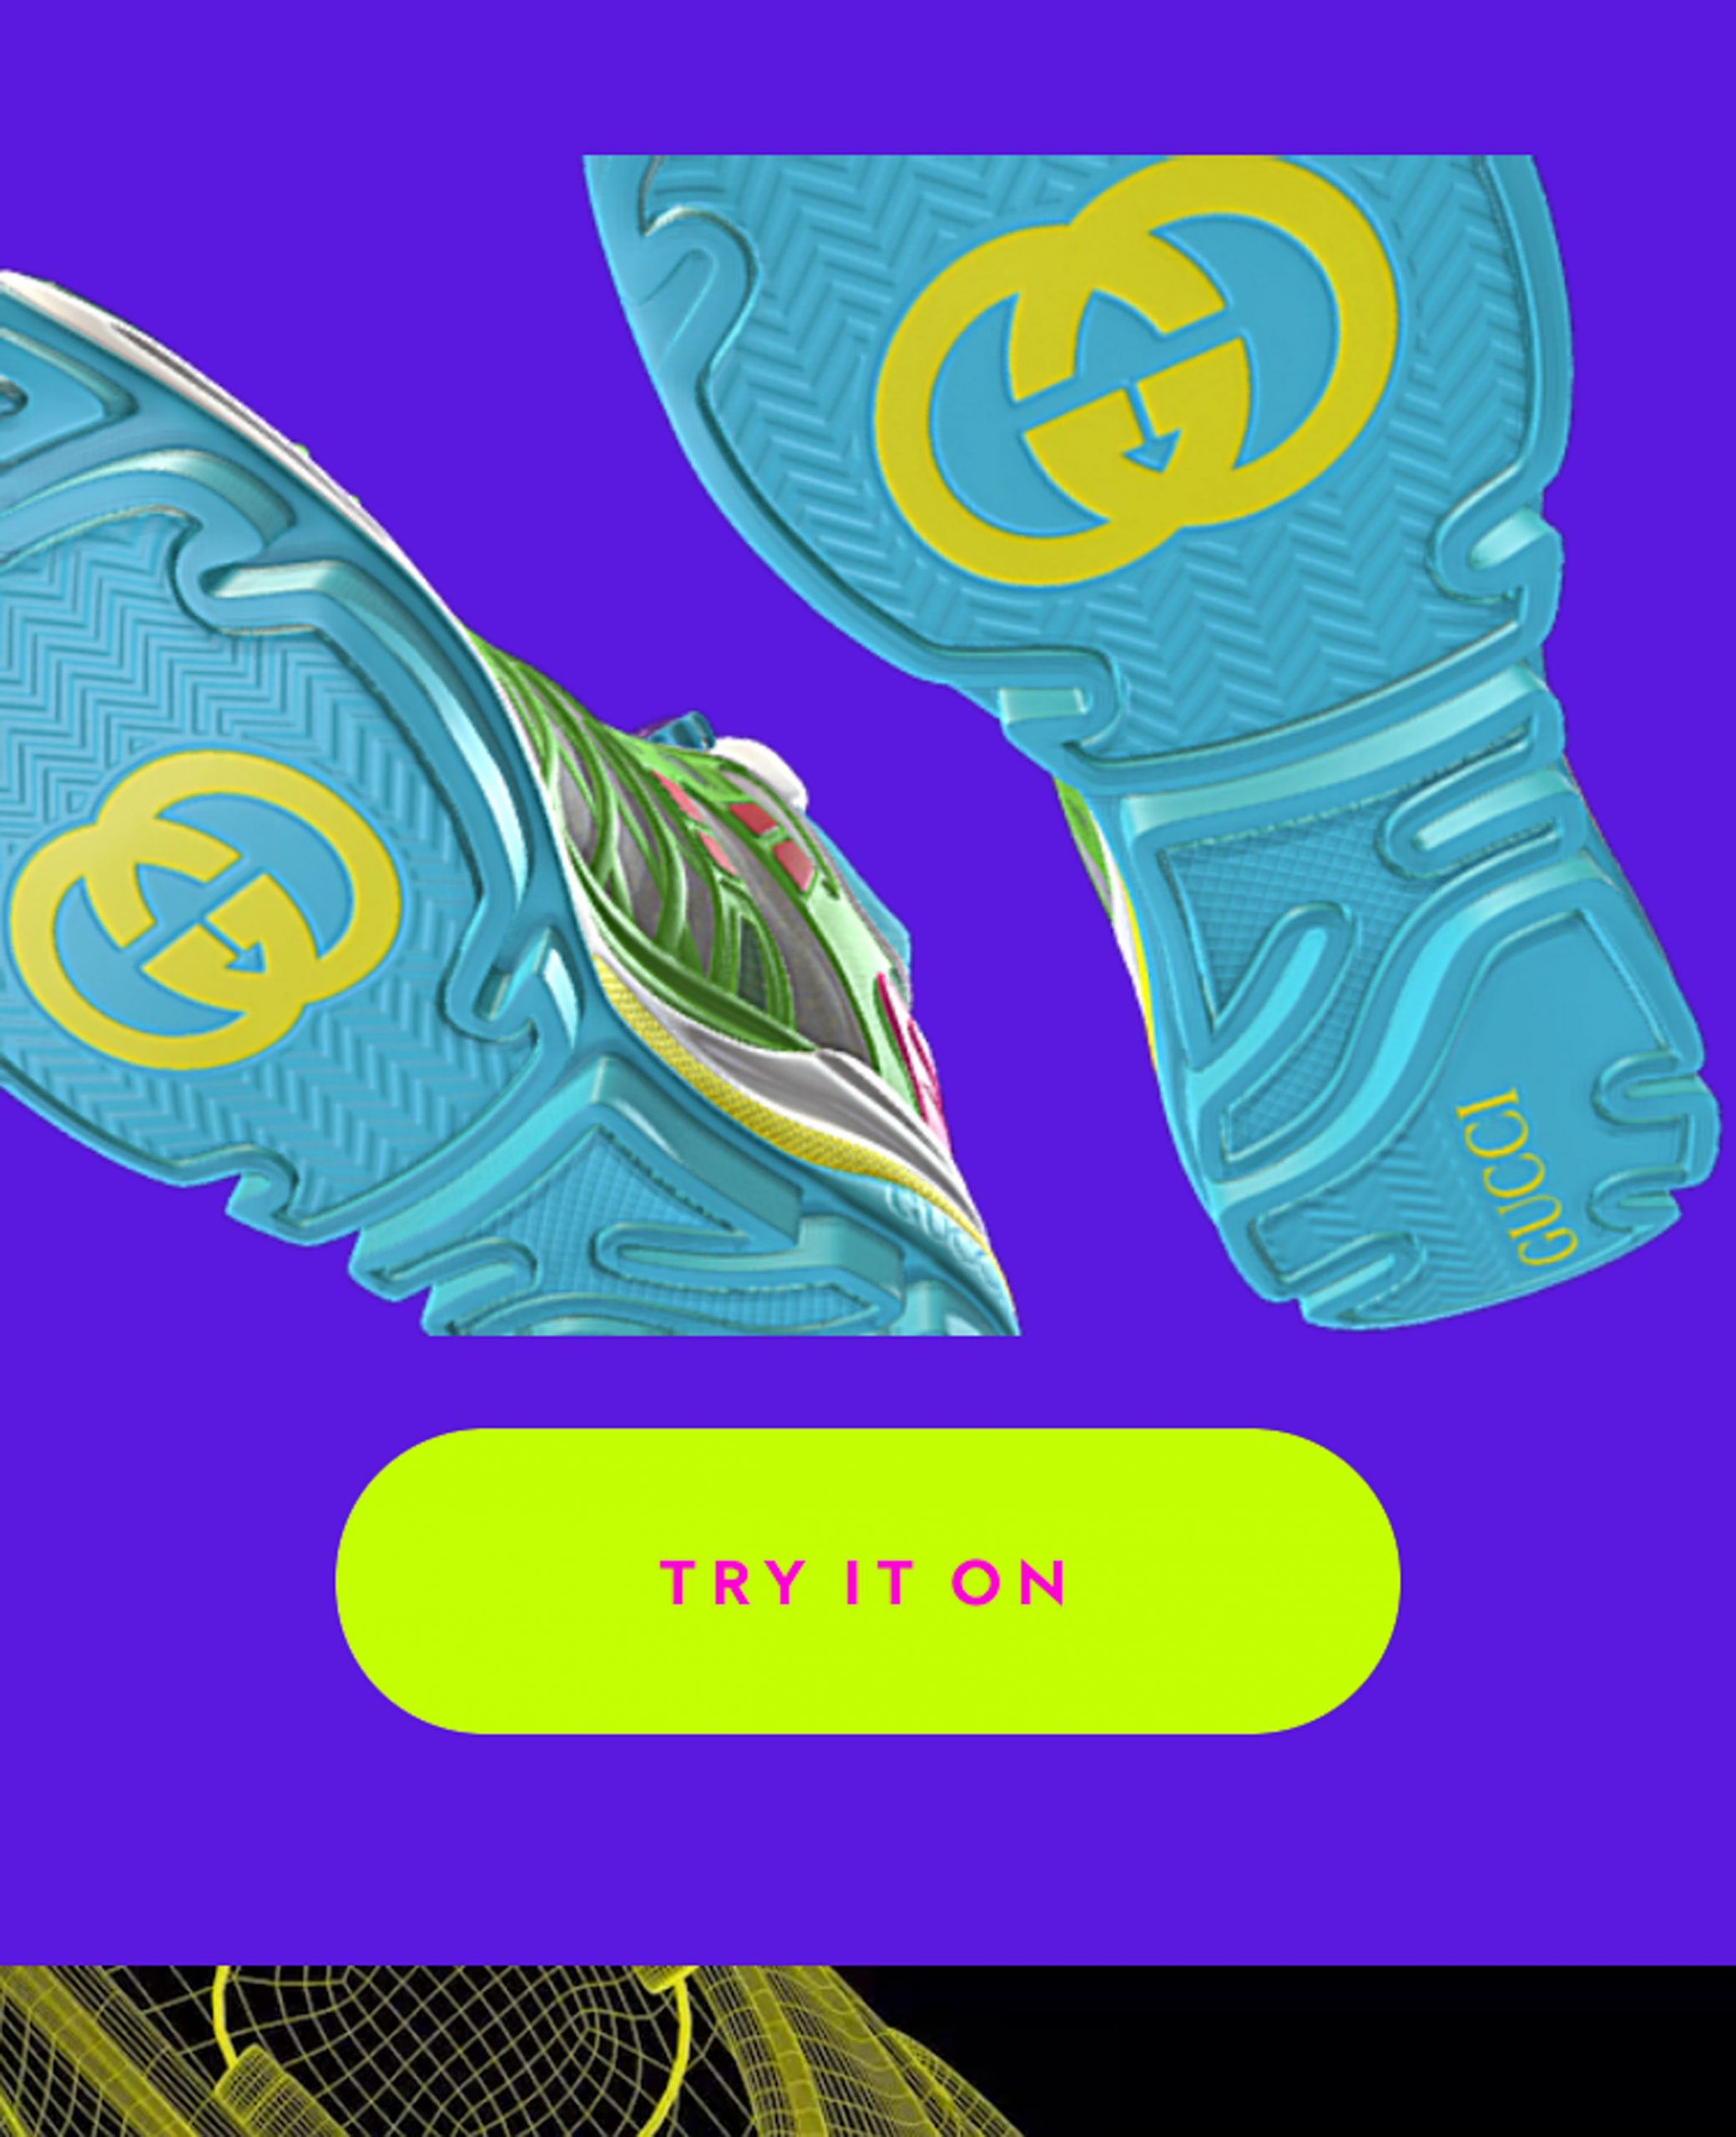 Digital-only trainer with blue sole and Gucci logo